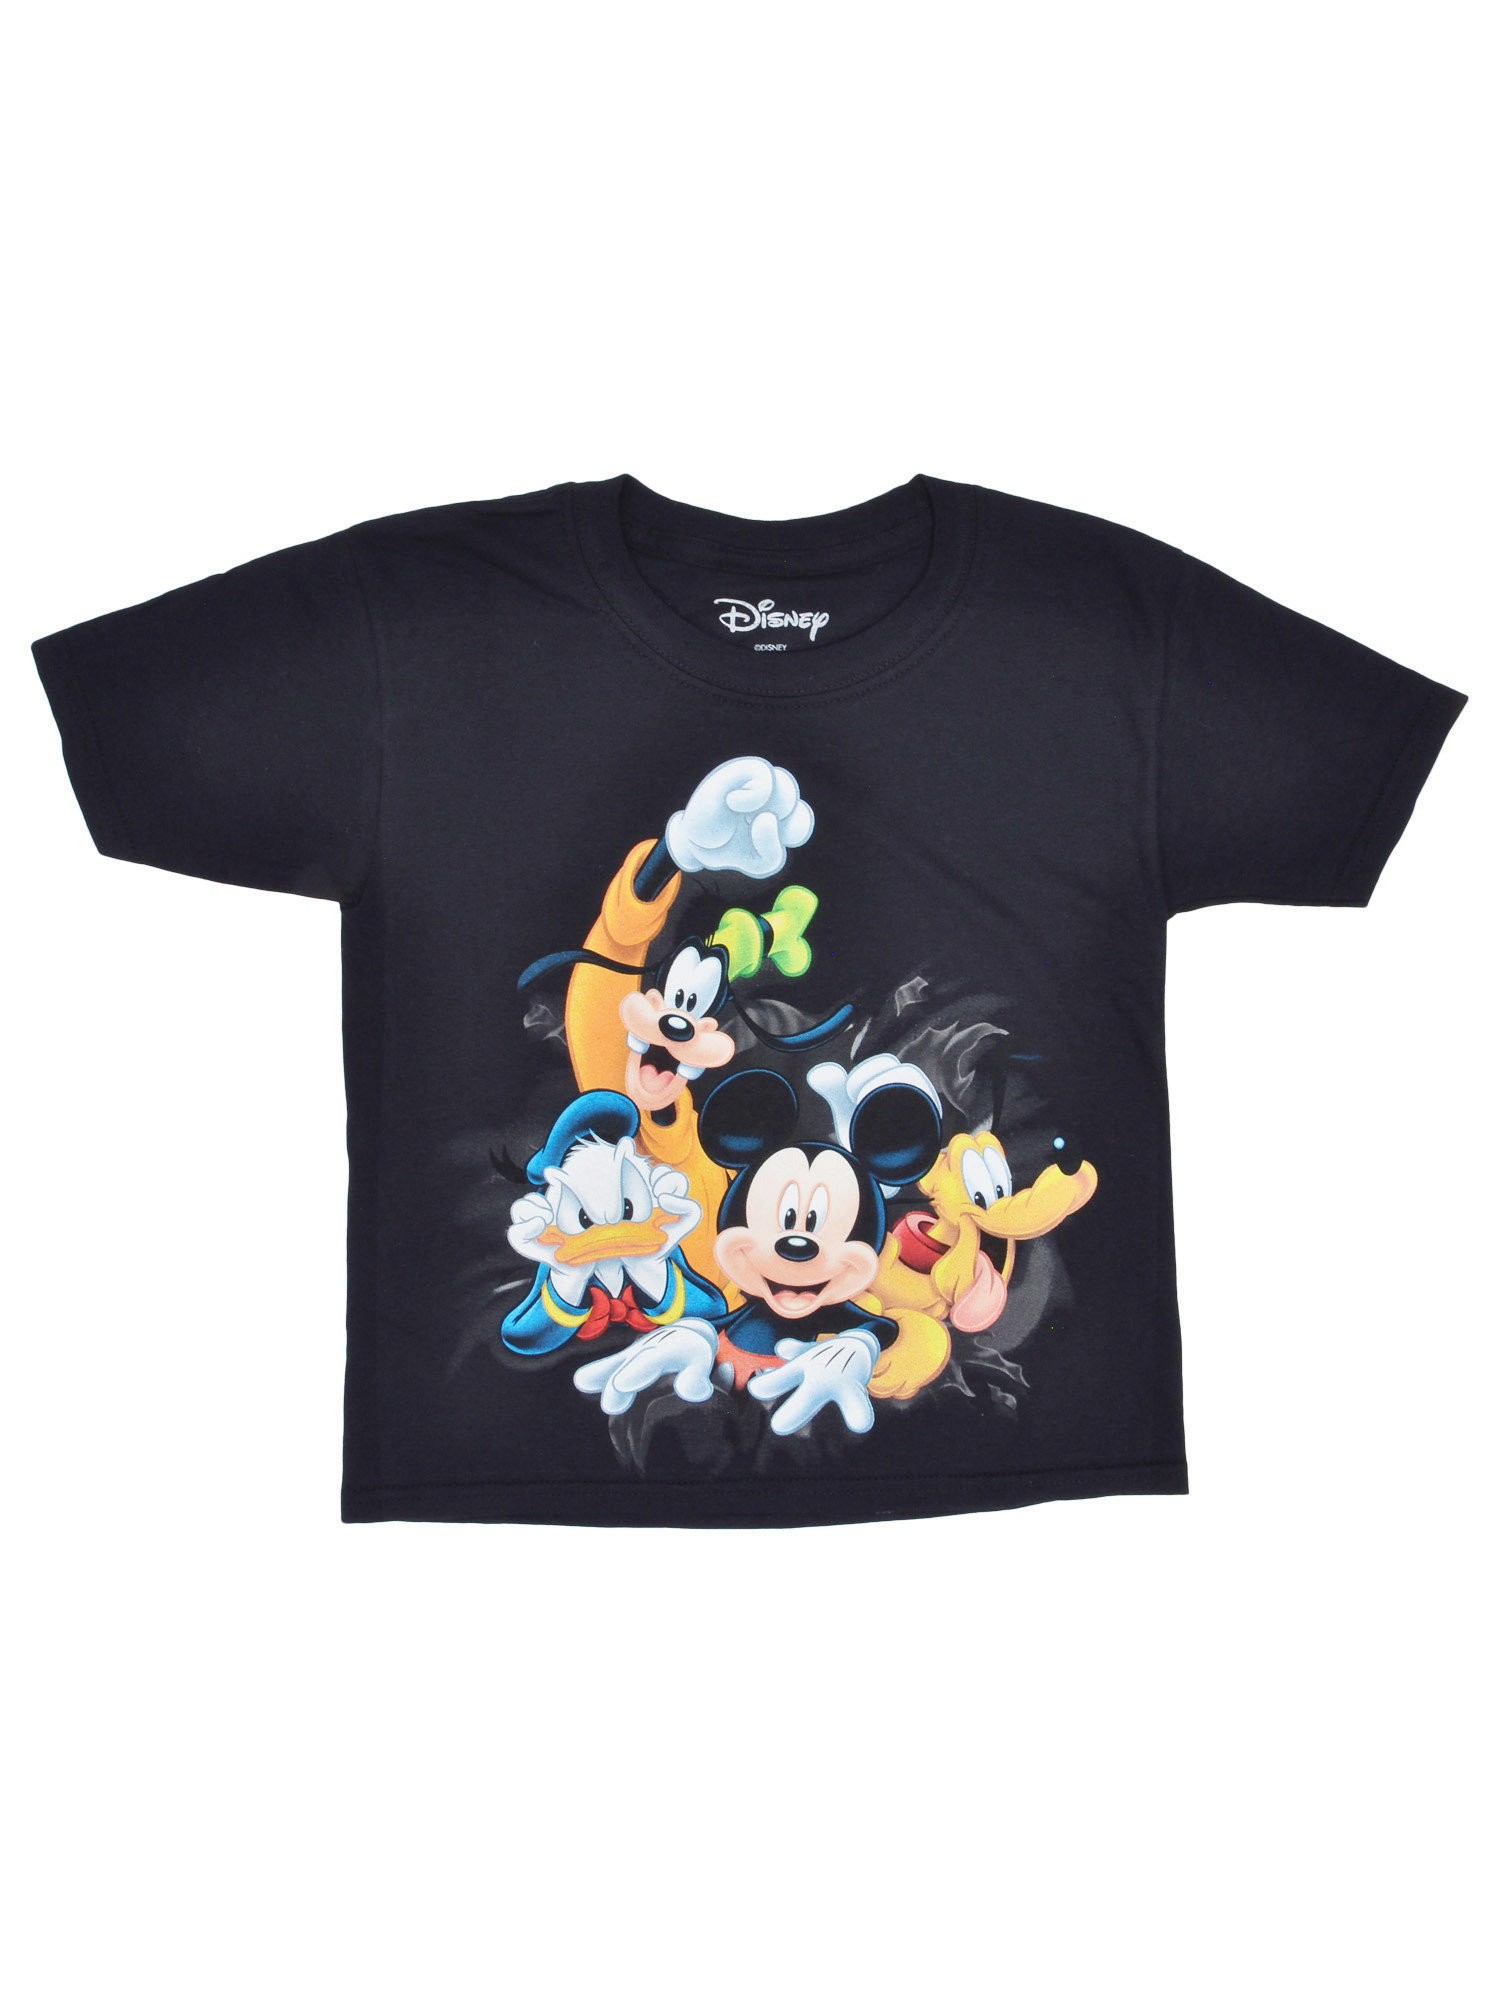 Girls Disney Mickey Mouse & Friends Front & Back T-Shirt Black